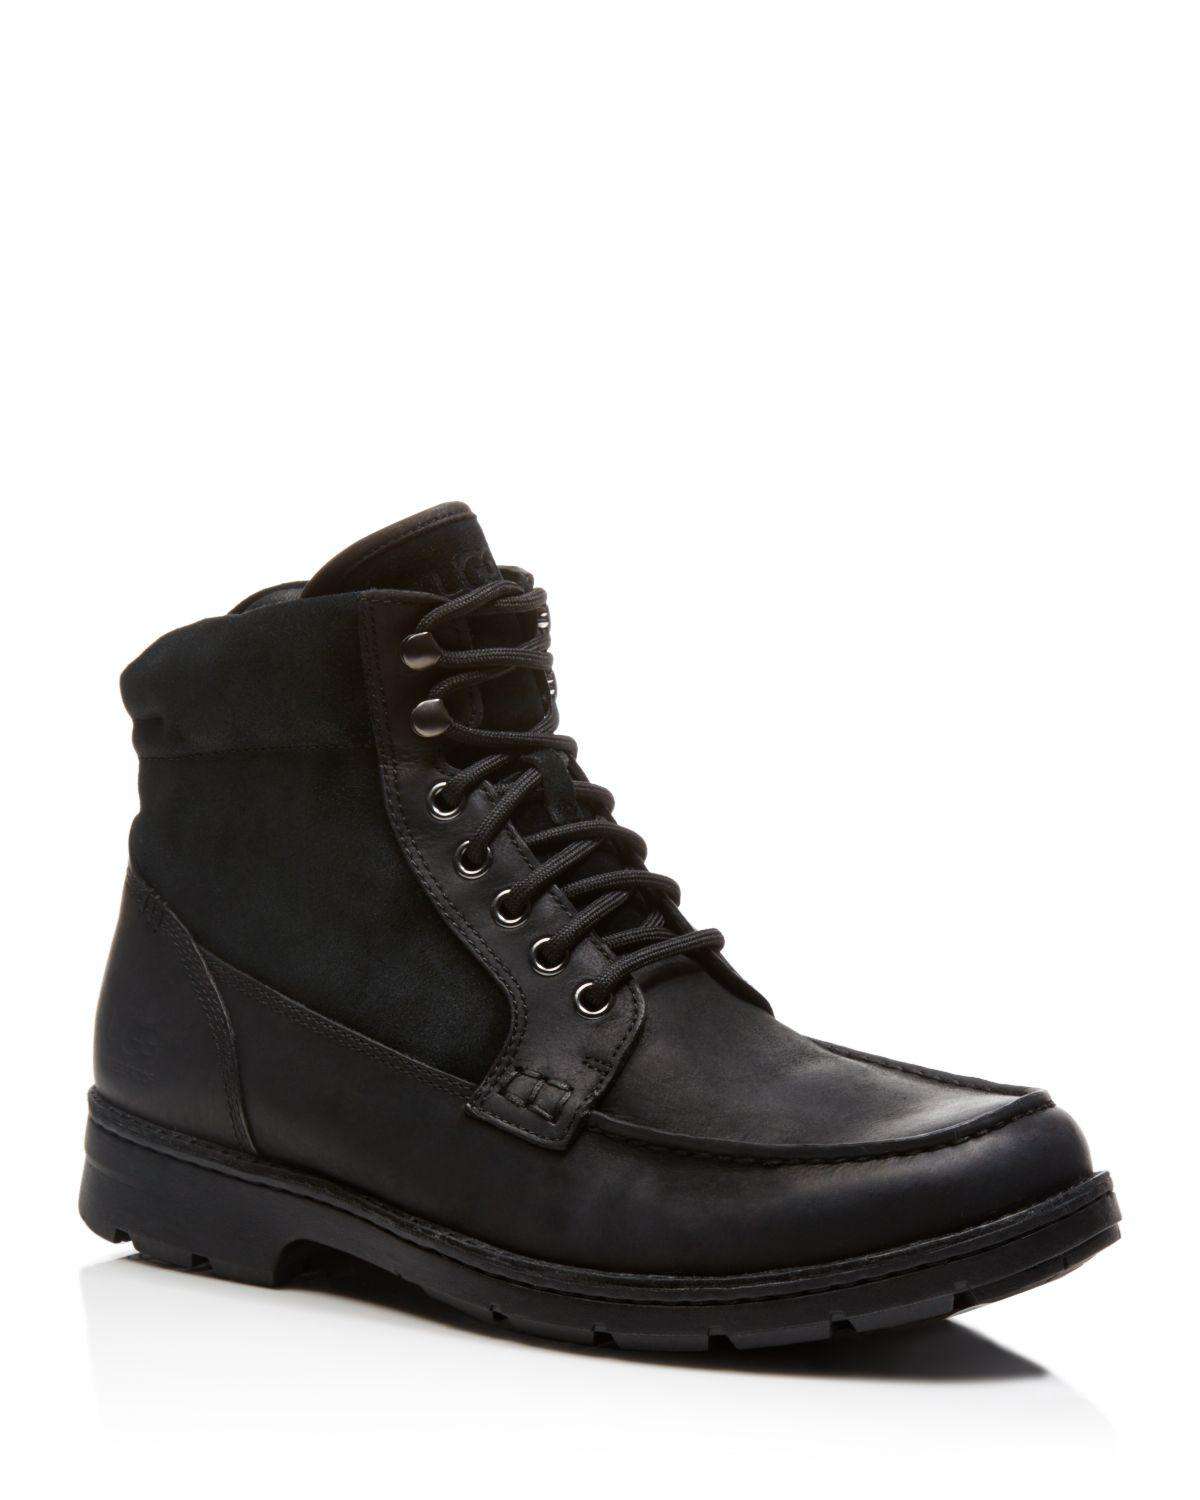 ugg australia barrington waterproof leather boots in black